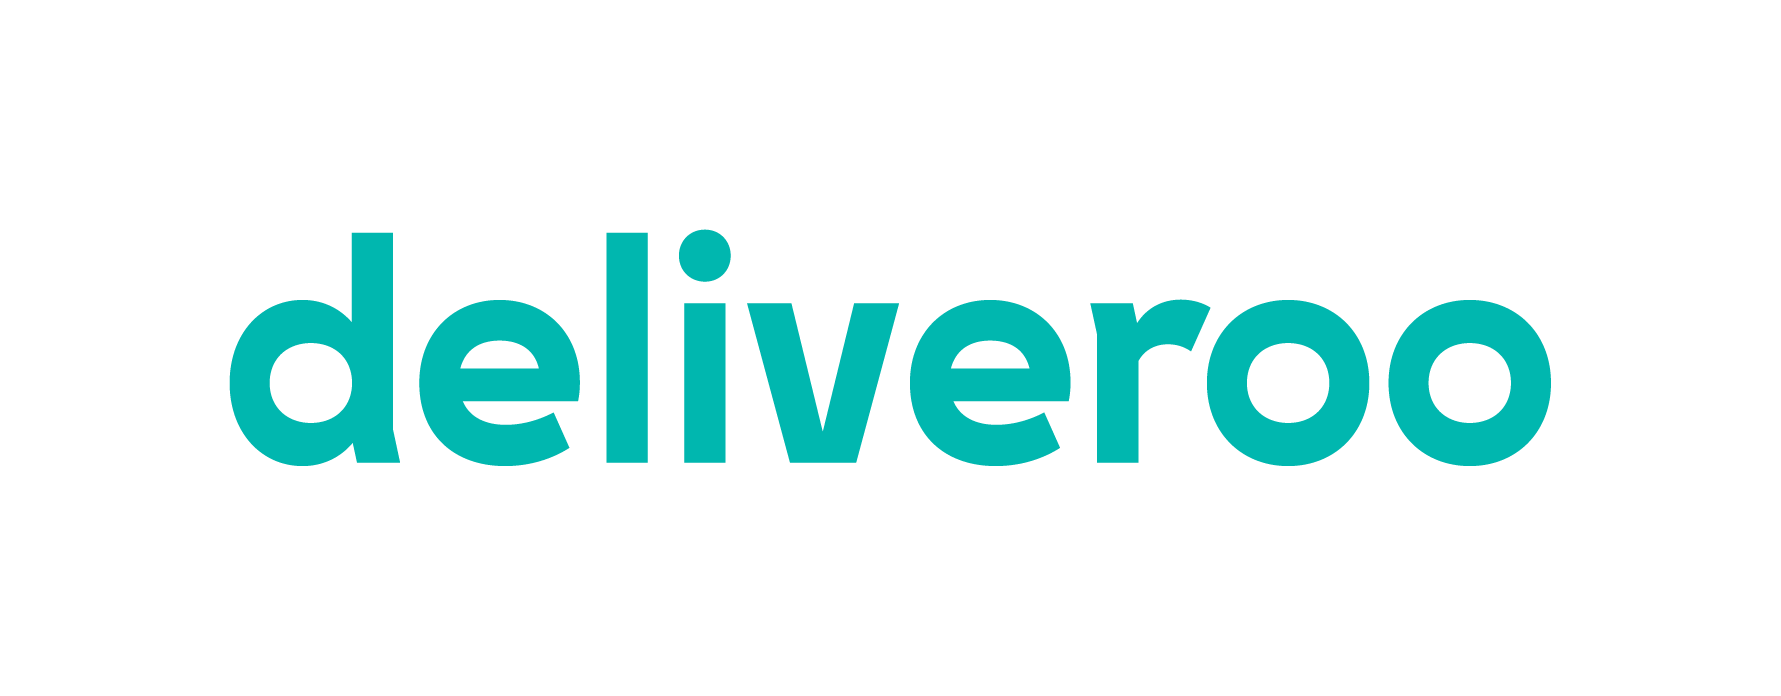 Deliveroo-Logo_Wordmark_Pantone-Uncoated_Teal